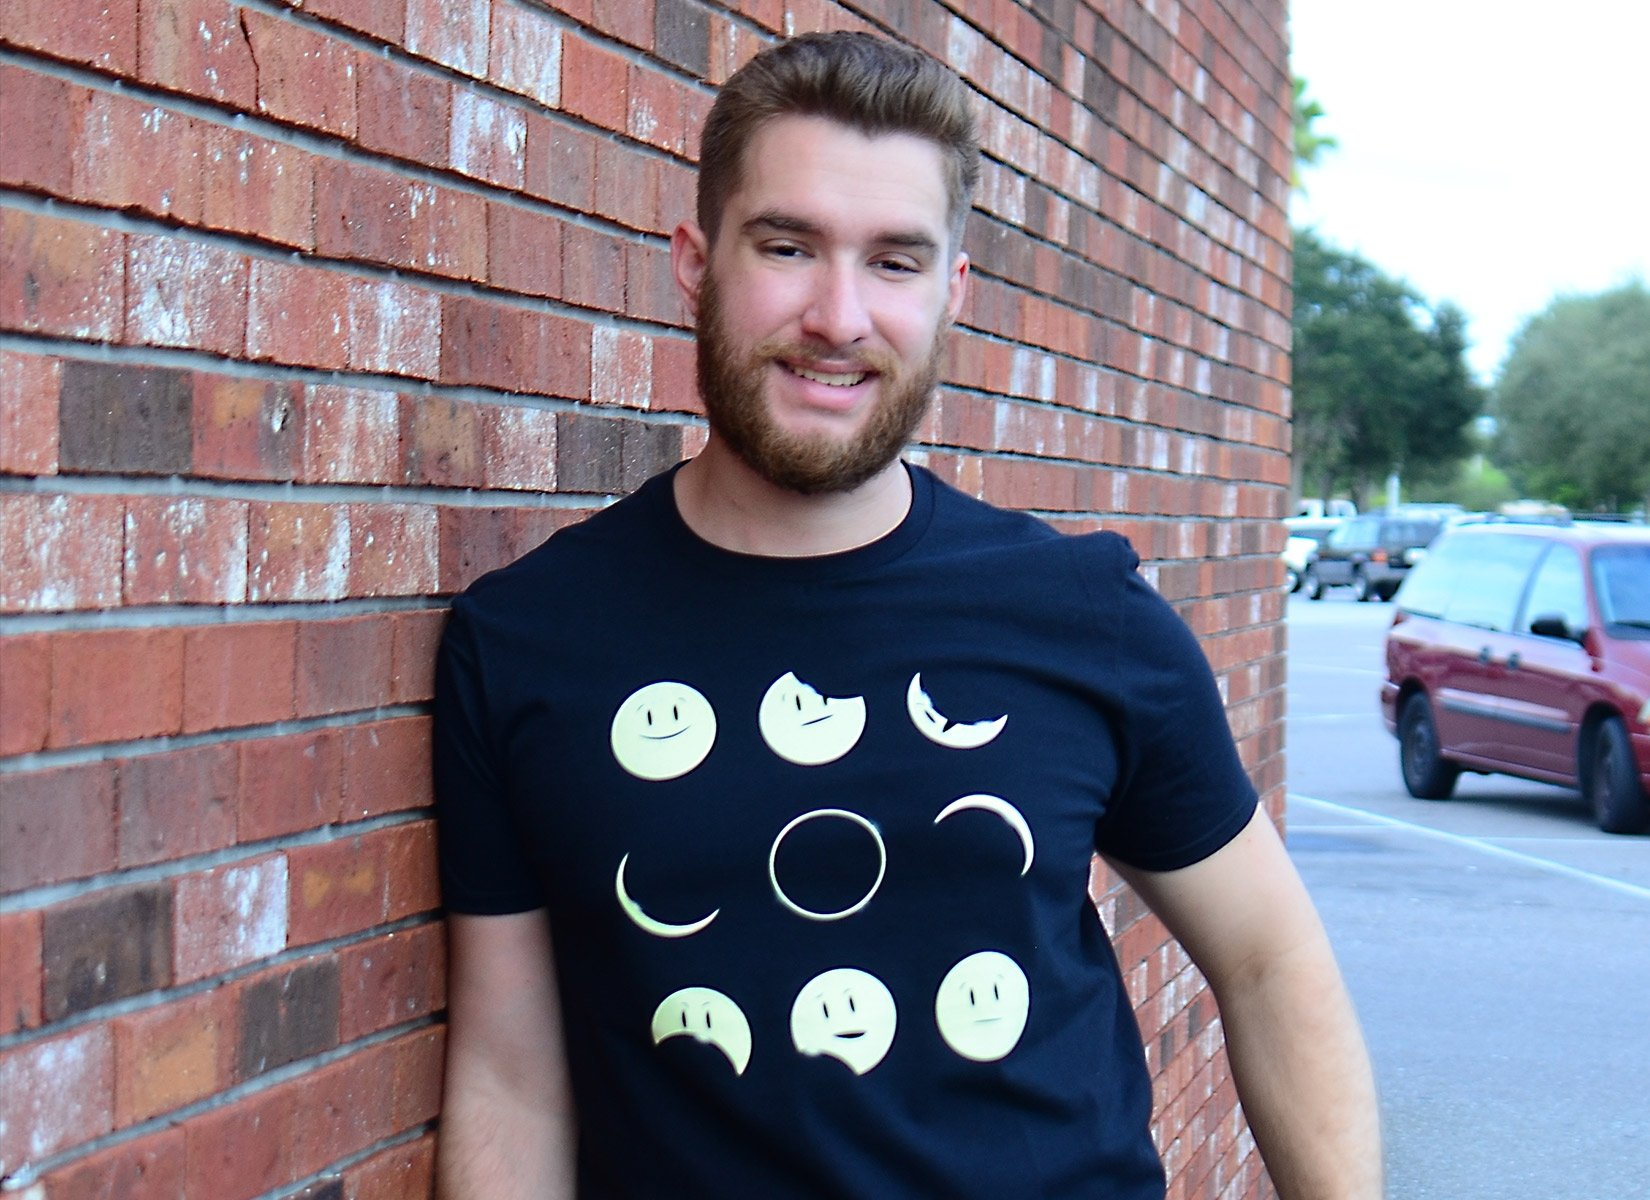 Eclipse Emoji on Mens T-Shirt